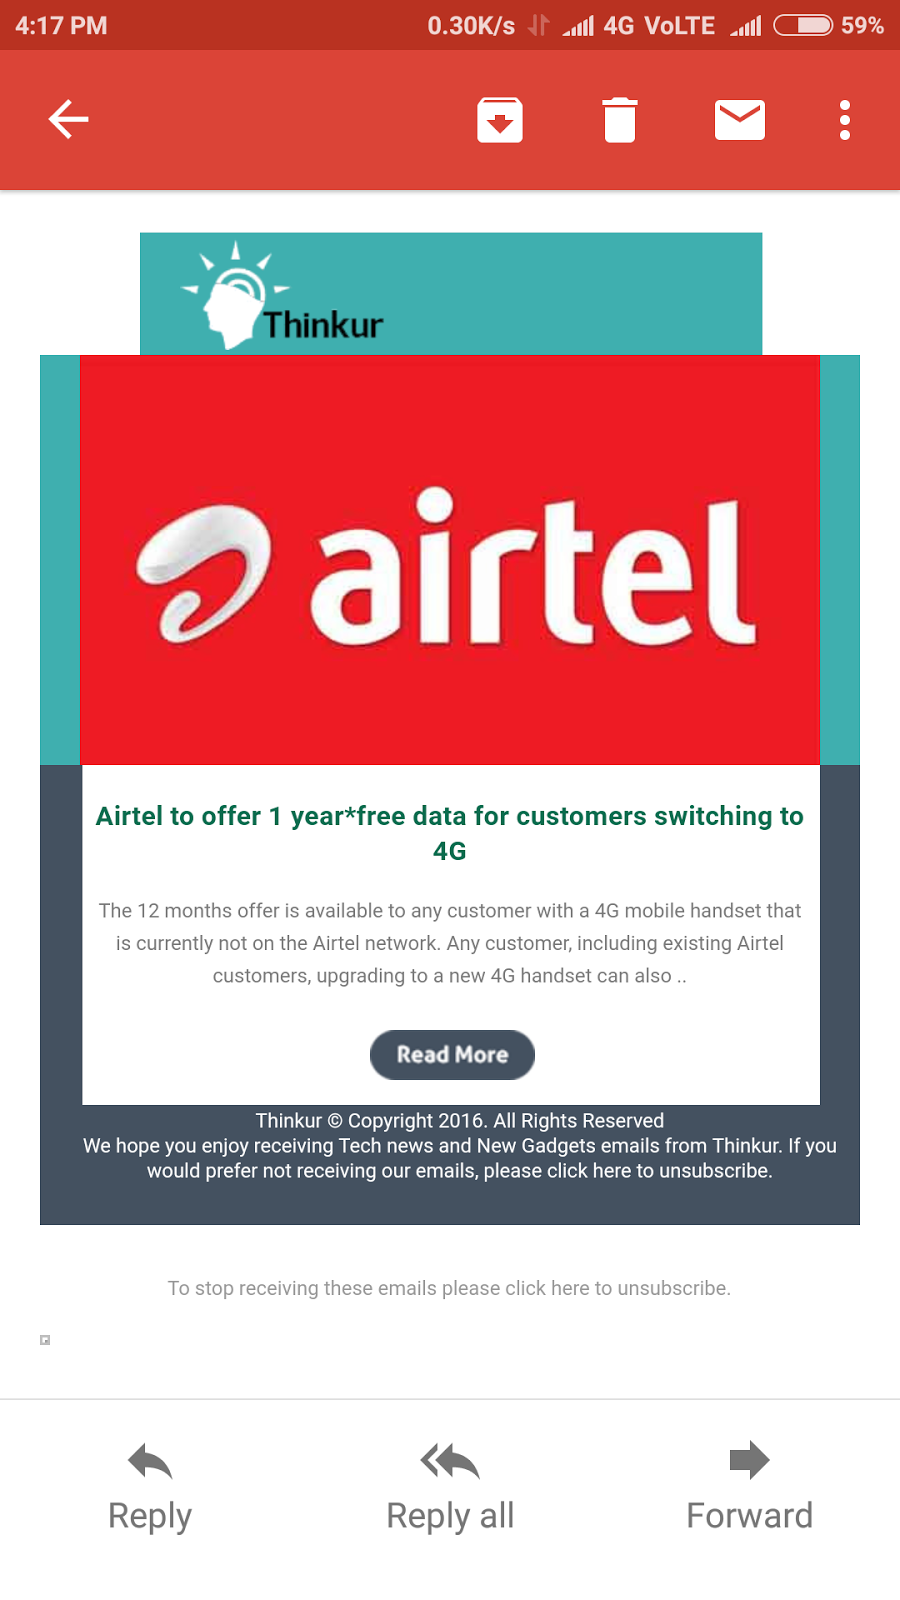 Airtel to give 1 year free data for 4g customers